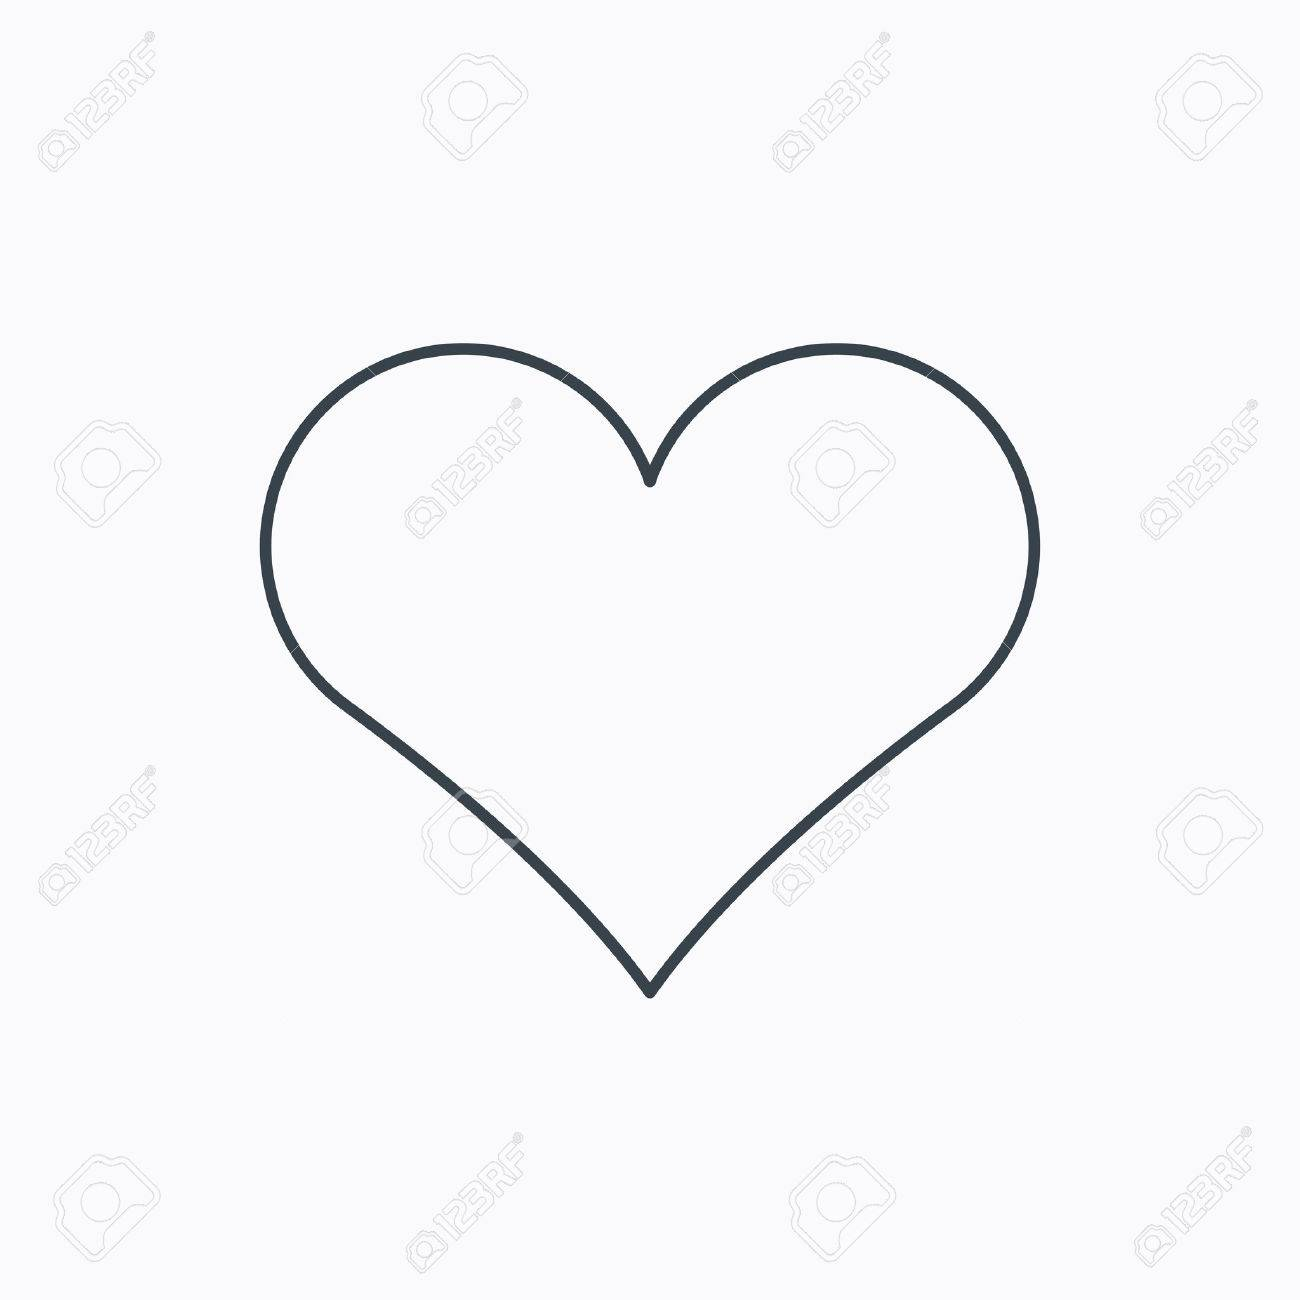 heart icon love sign life symbol linear outline icon on white rh 123rf com vector heart outline free vector heart outline free